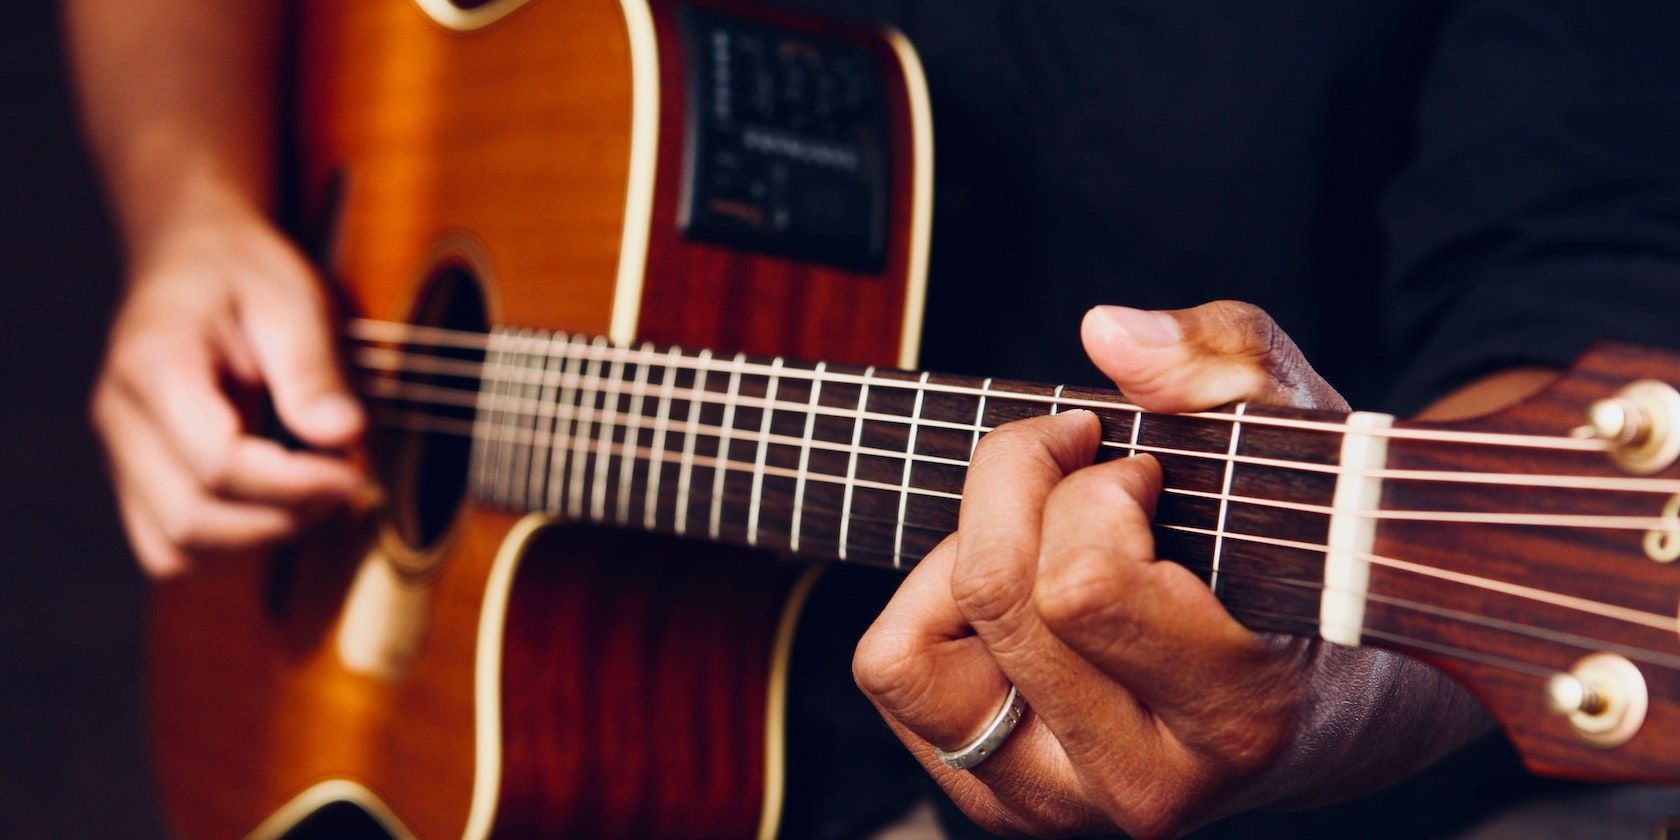 Electro-Acoustic Guitars Are Better Than Acoustic Guitars. Here's Why...